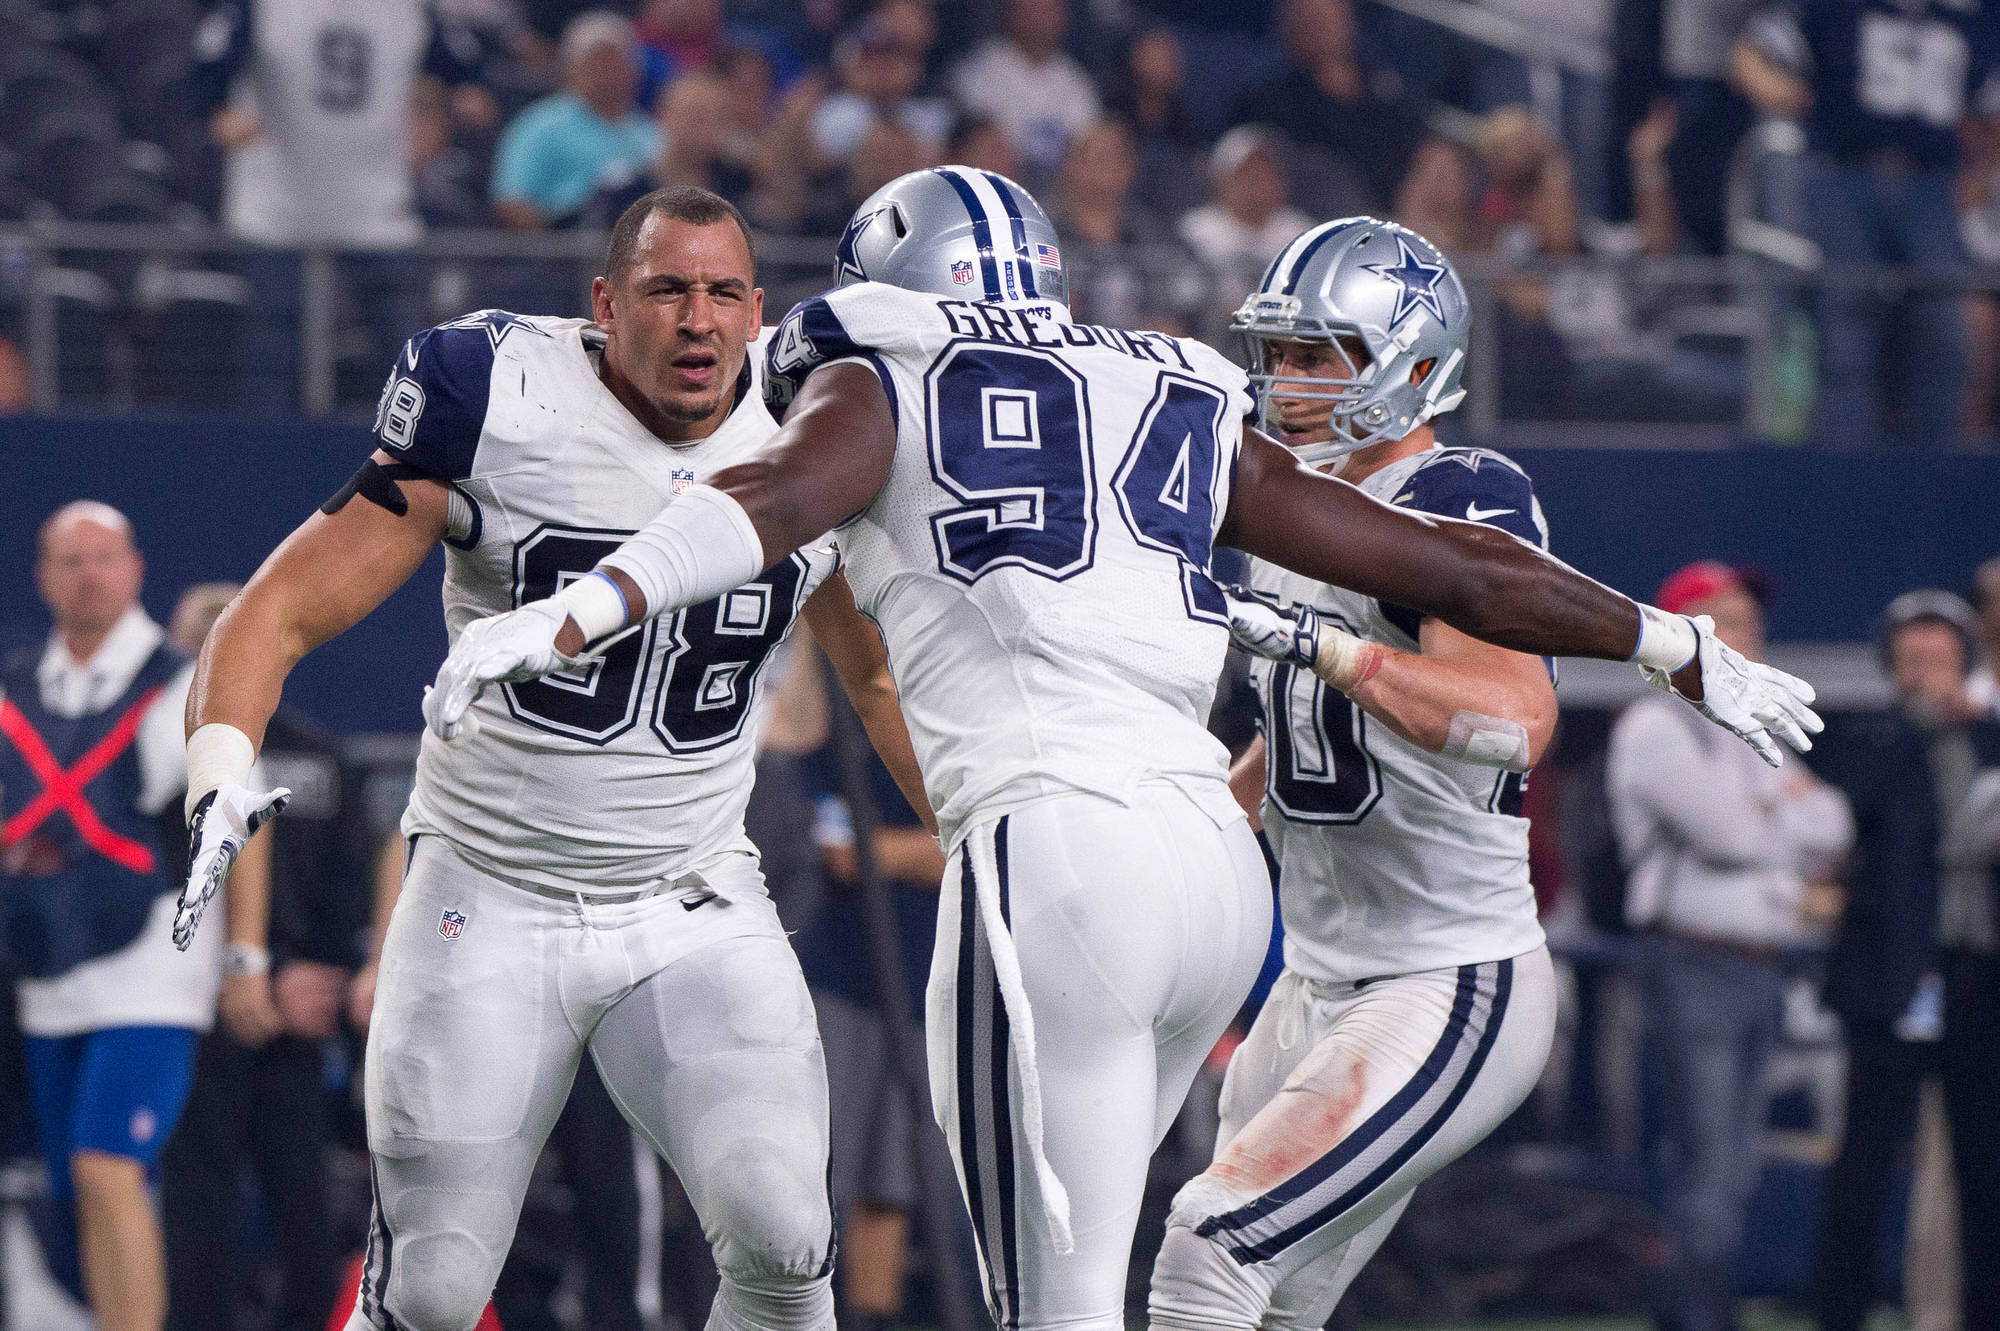 Dallas Cowboys: Terrell McClain headed back to Dallas?